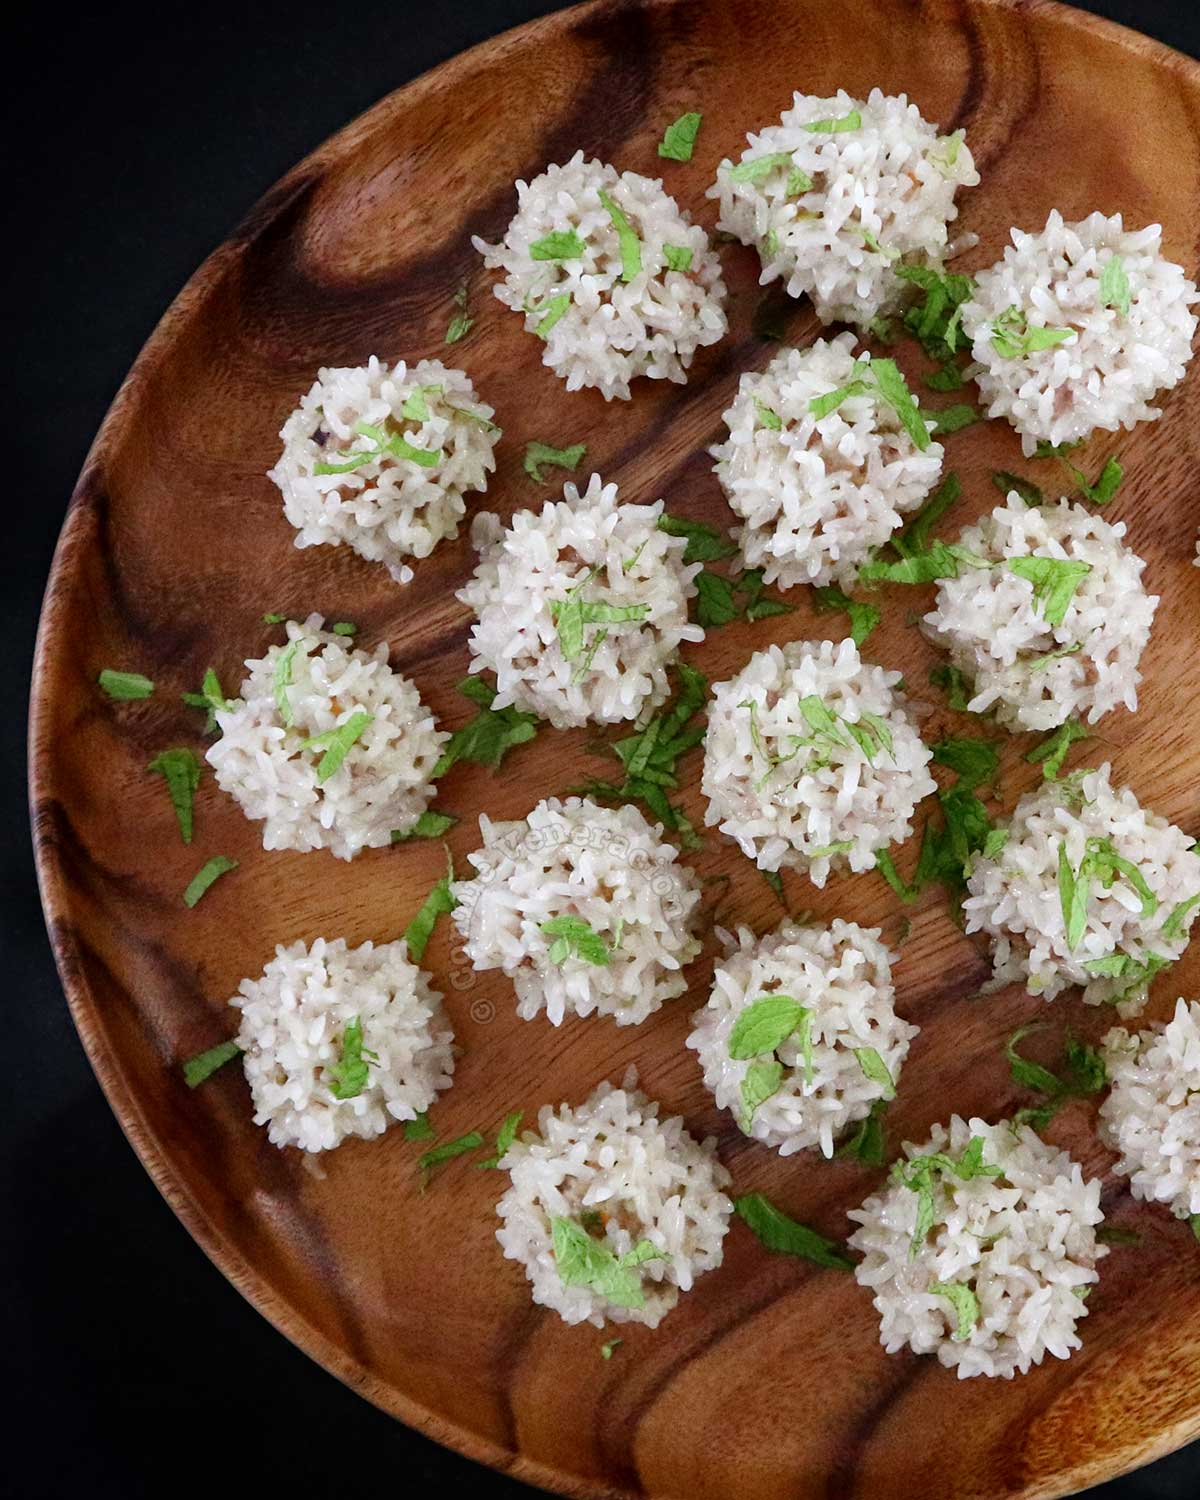 Chinese sticky rice balls on wooden platter